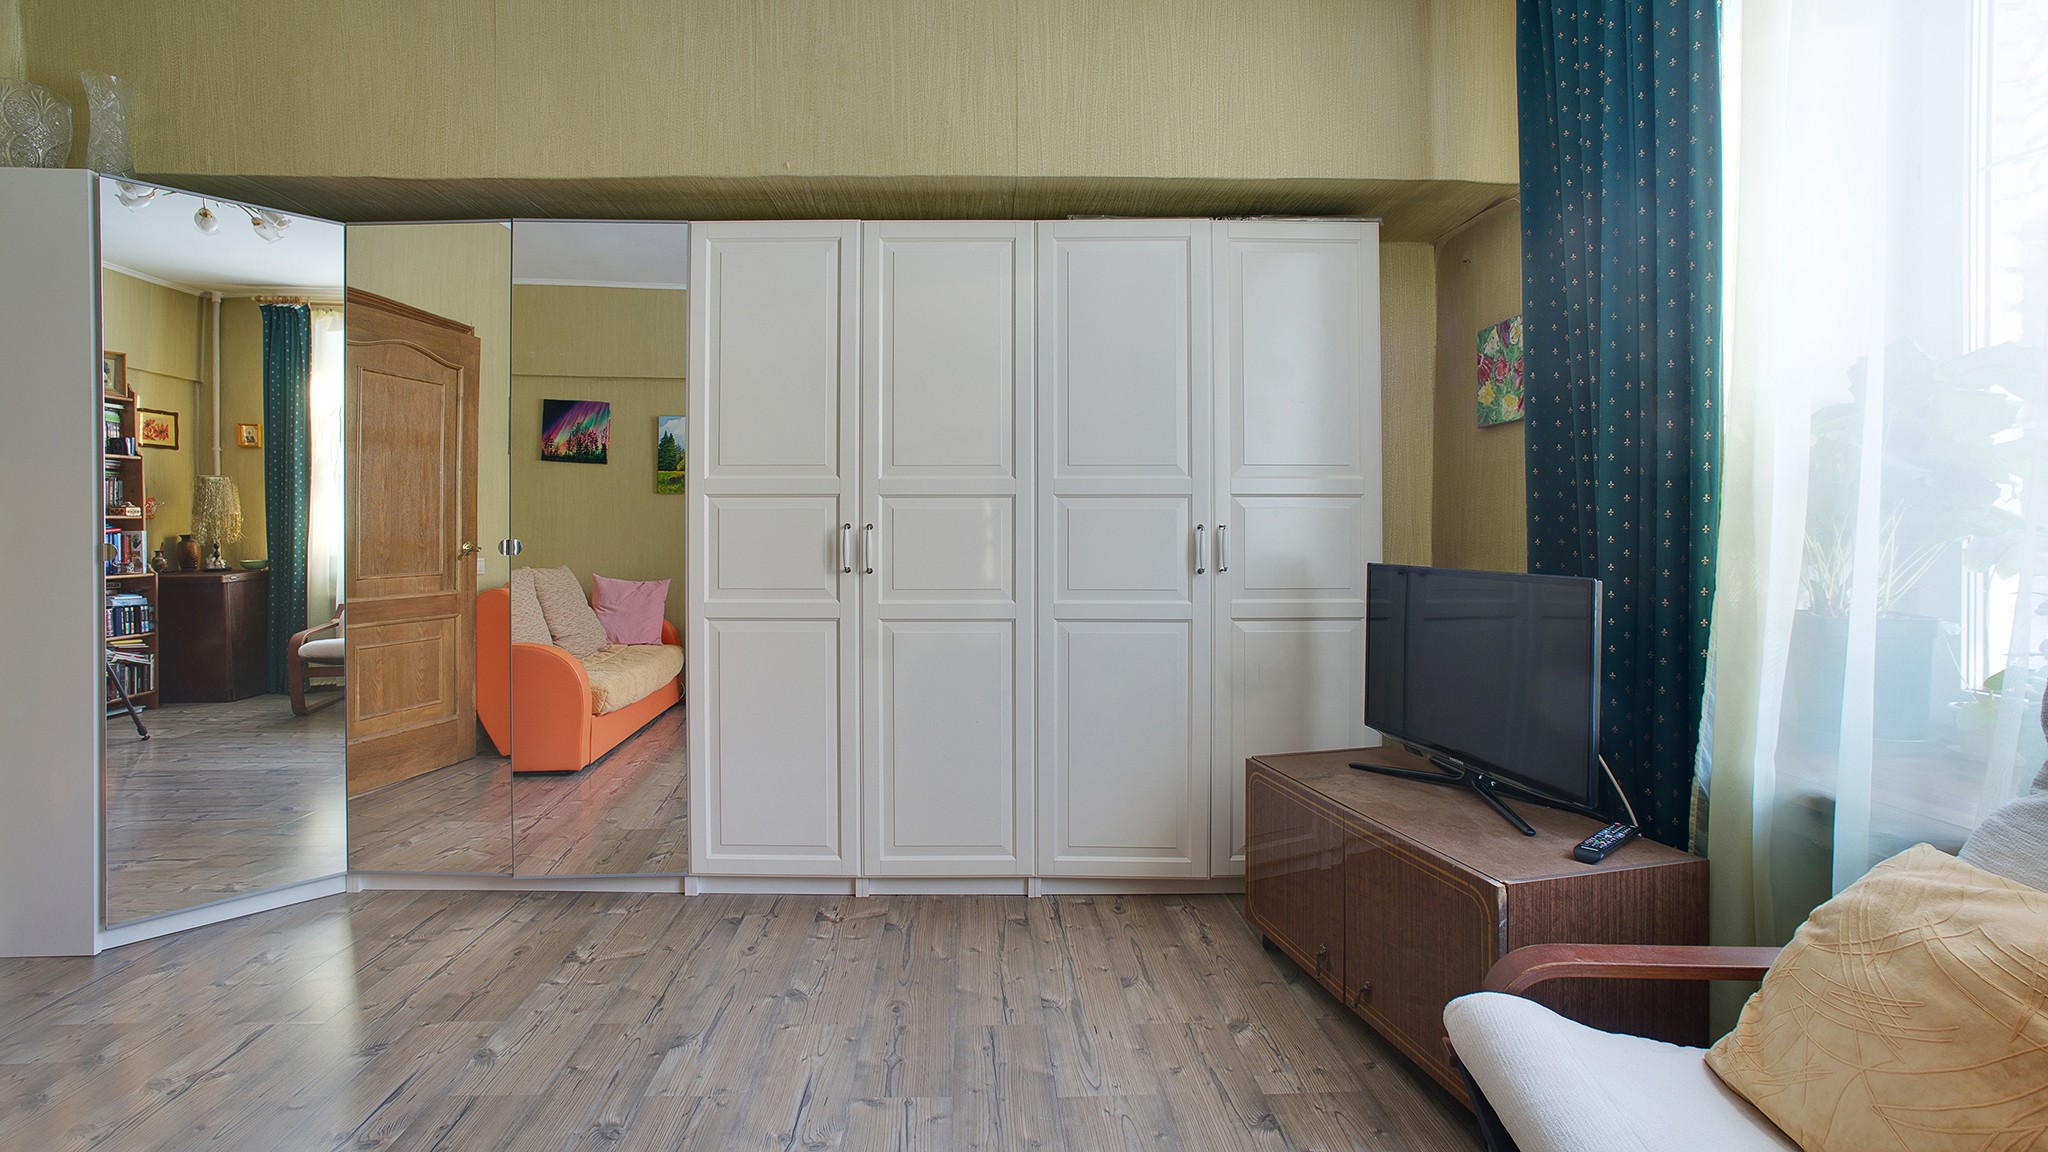 Interior photography of low budget apartments for sale